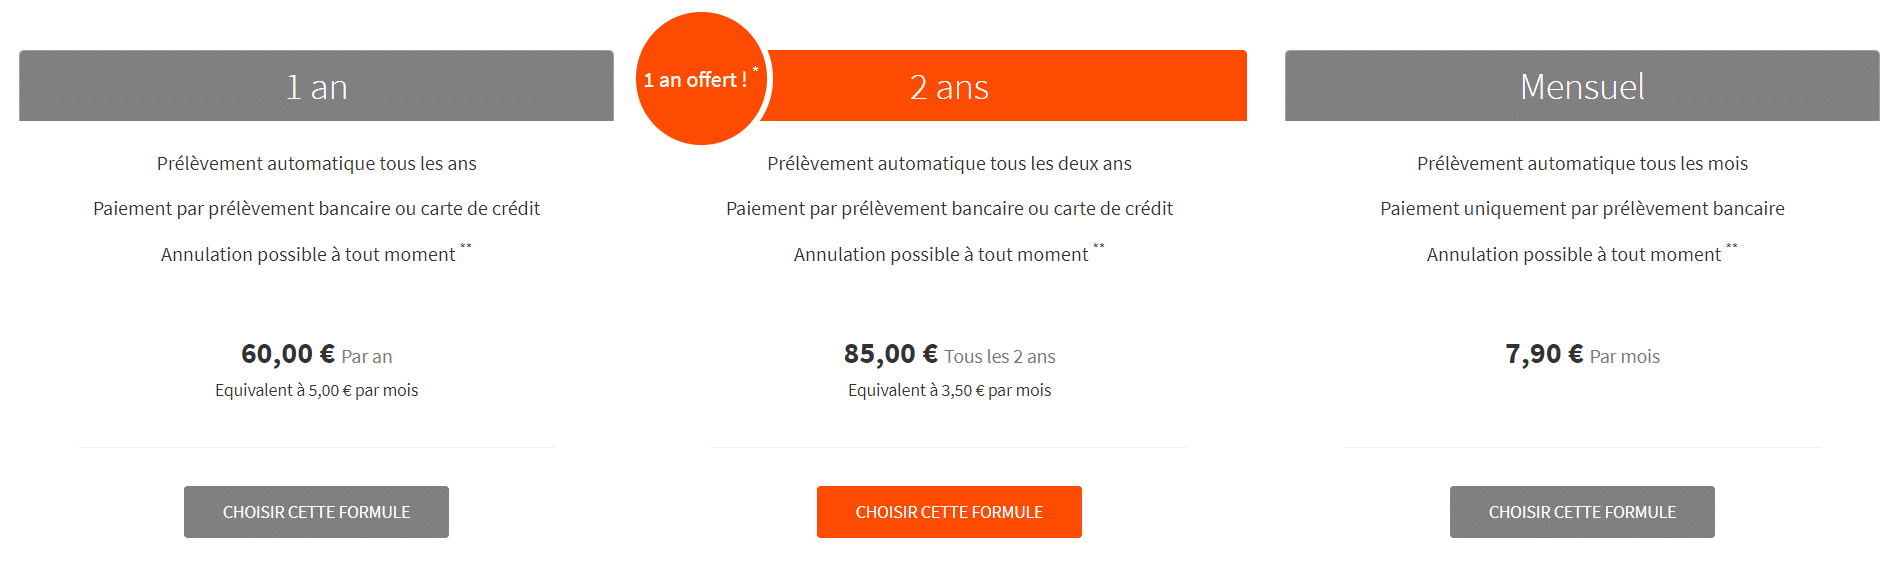 offre-abonnement-weenect-dogs